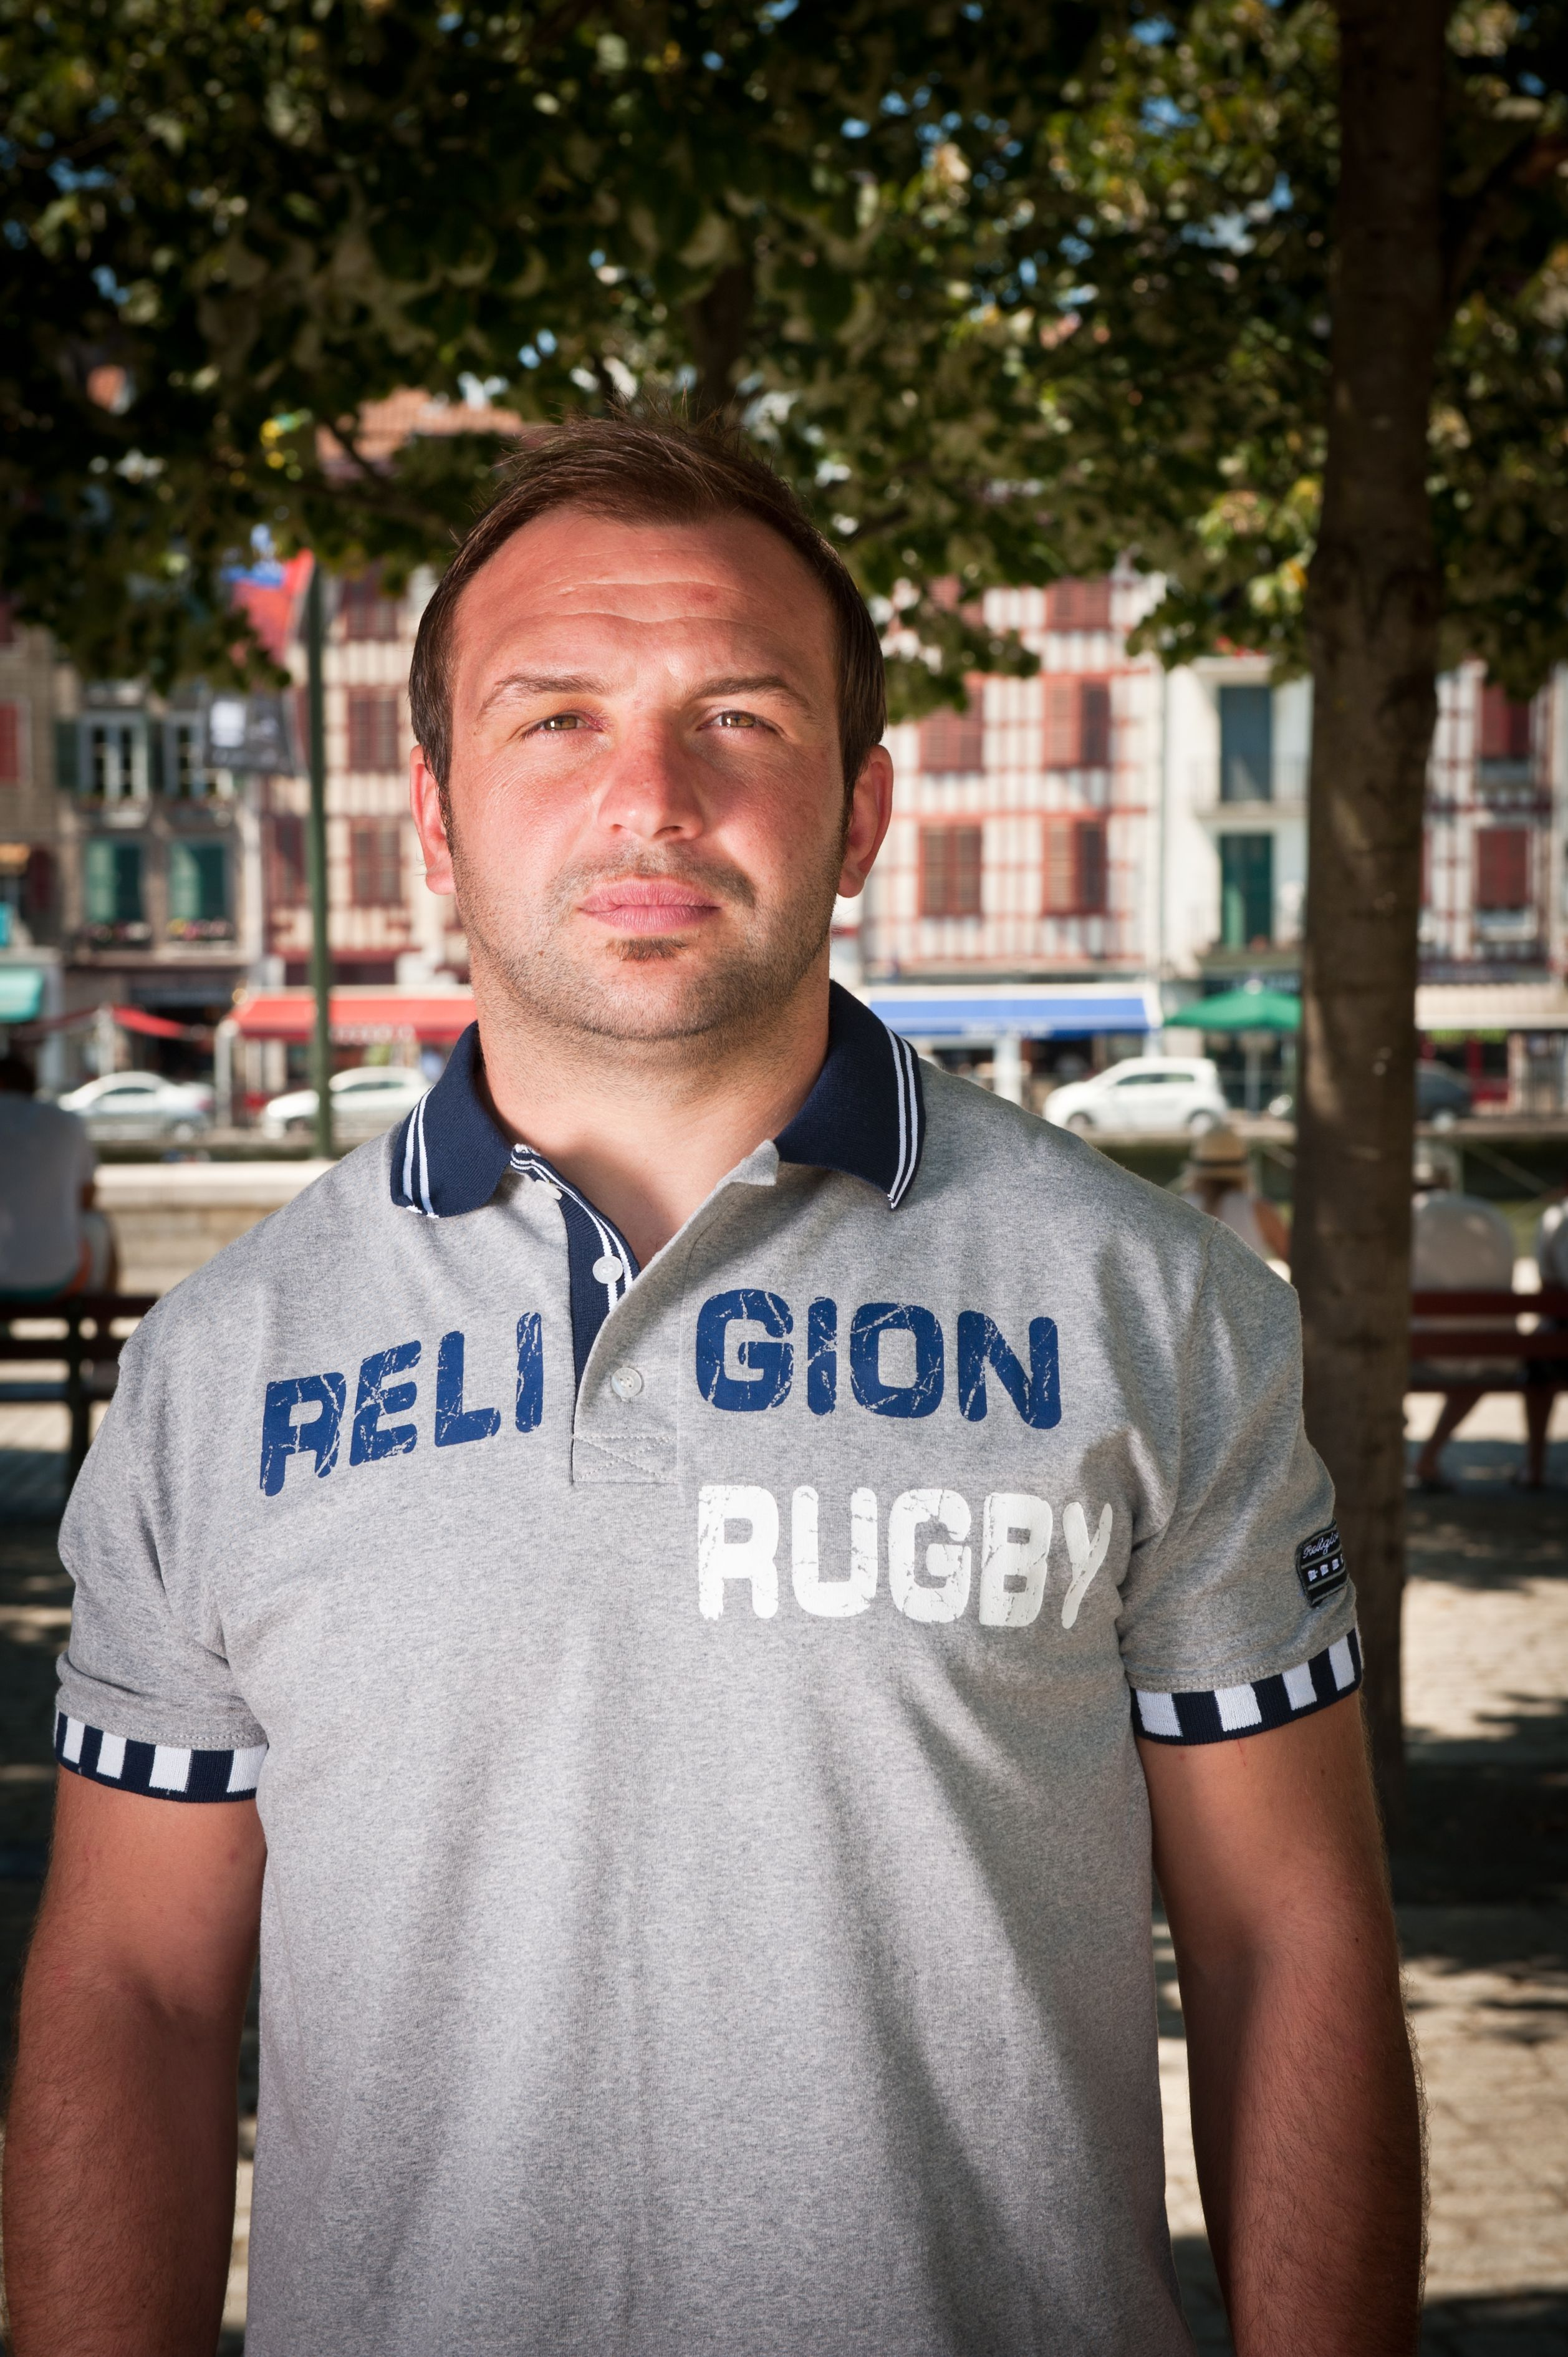 Polo Religion Par Porté HeguybopbBoutique Arnaud Rugby Nw0m8n